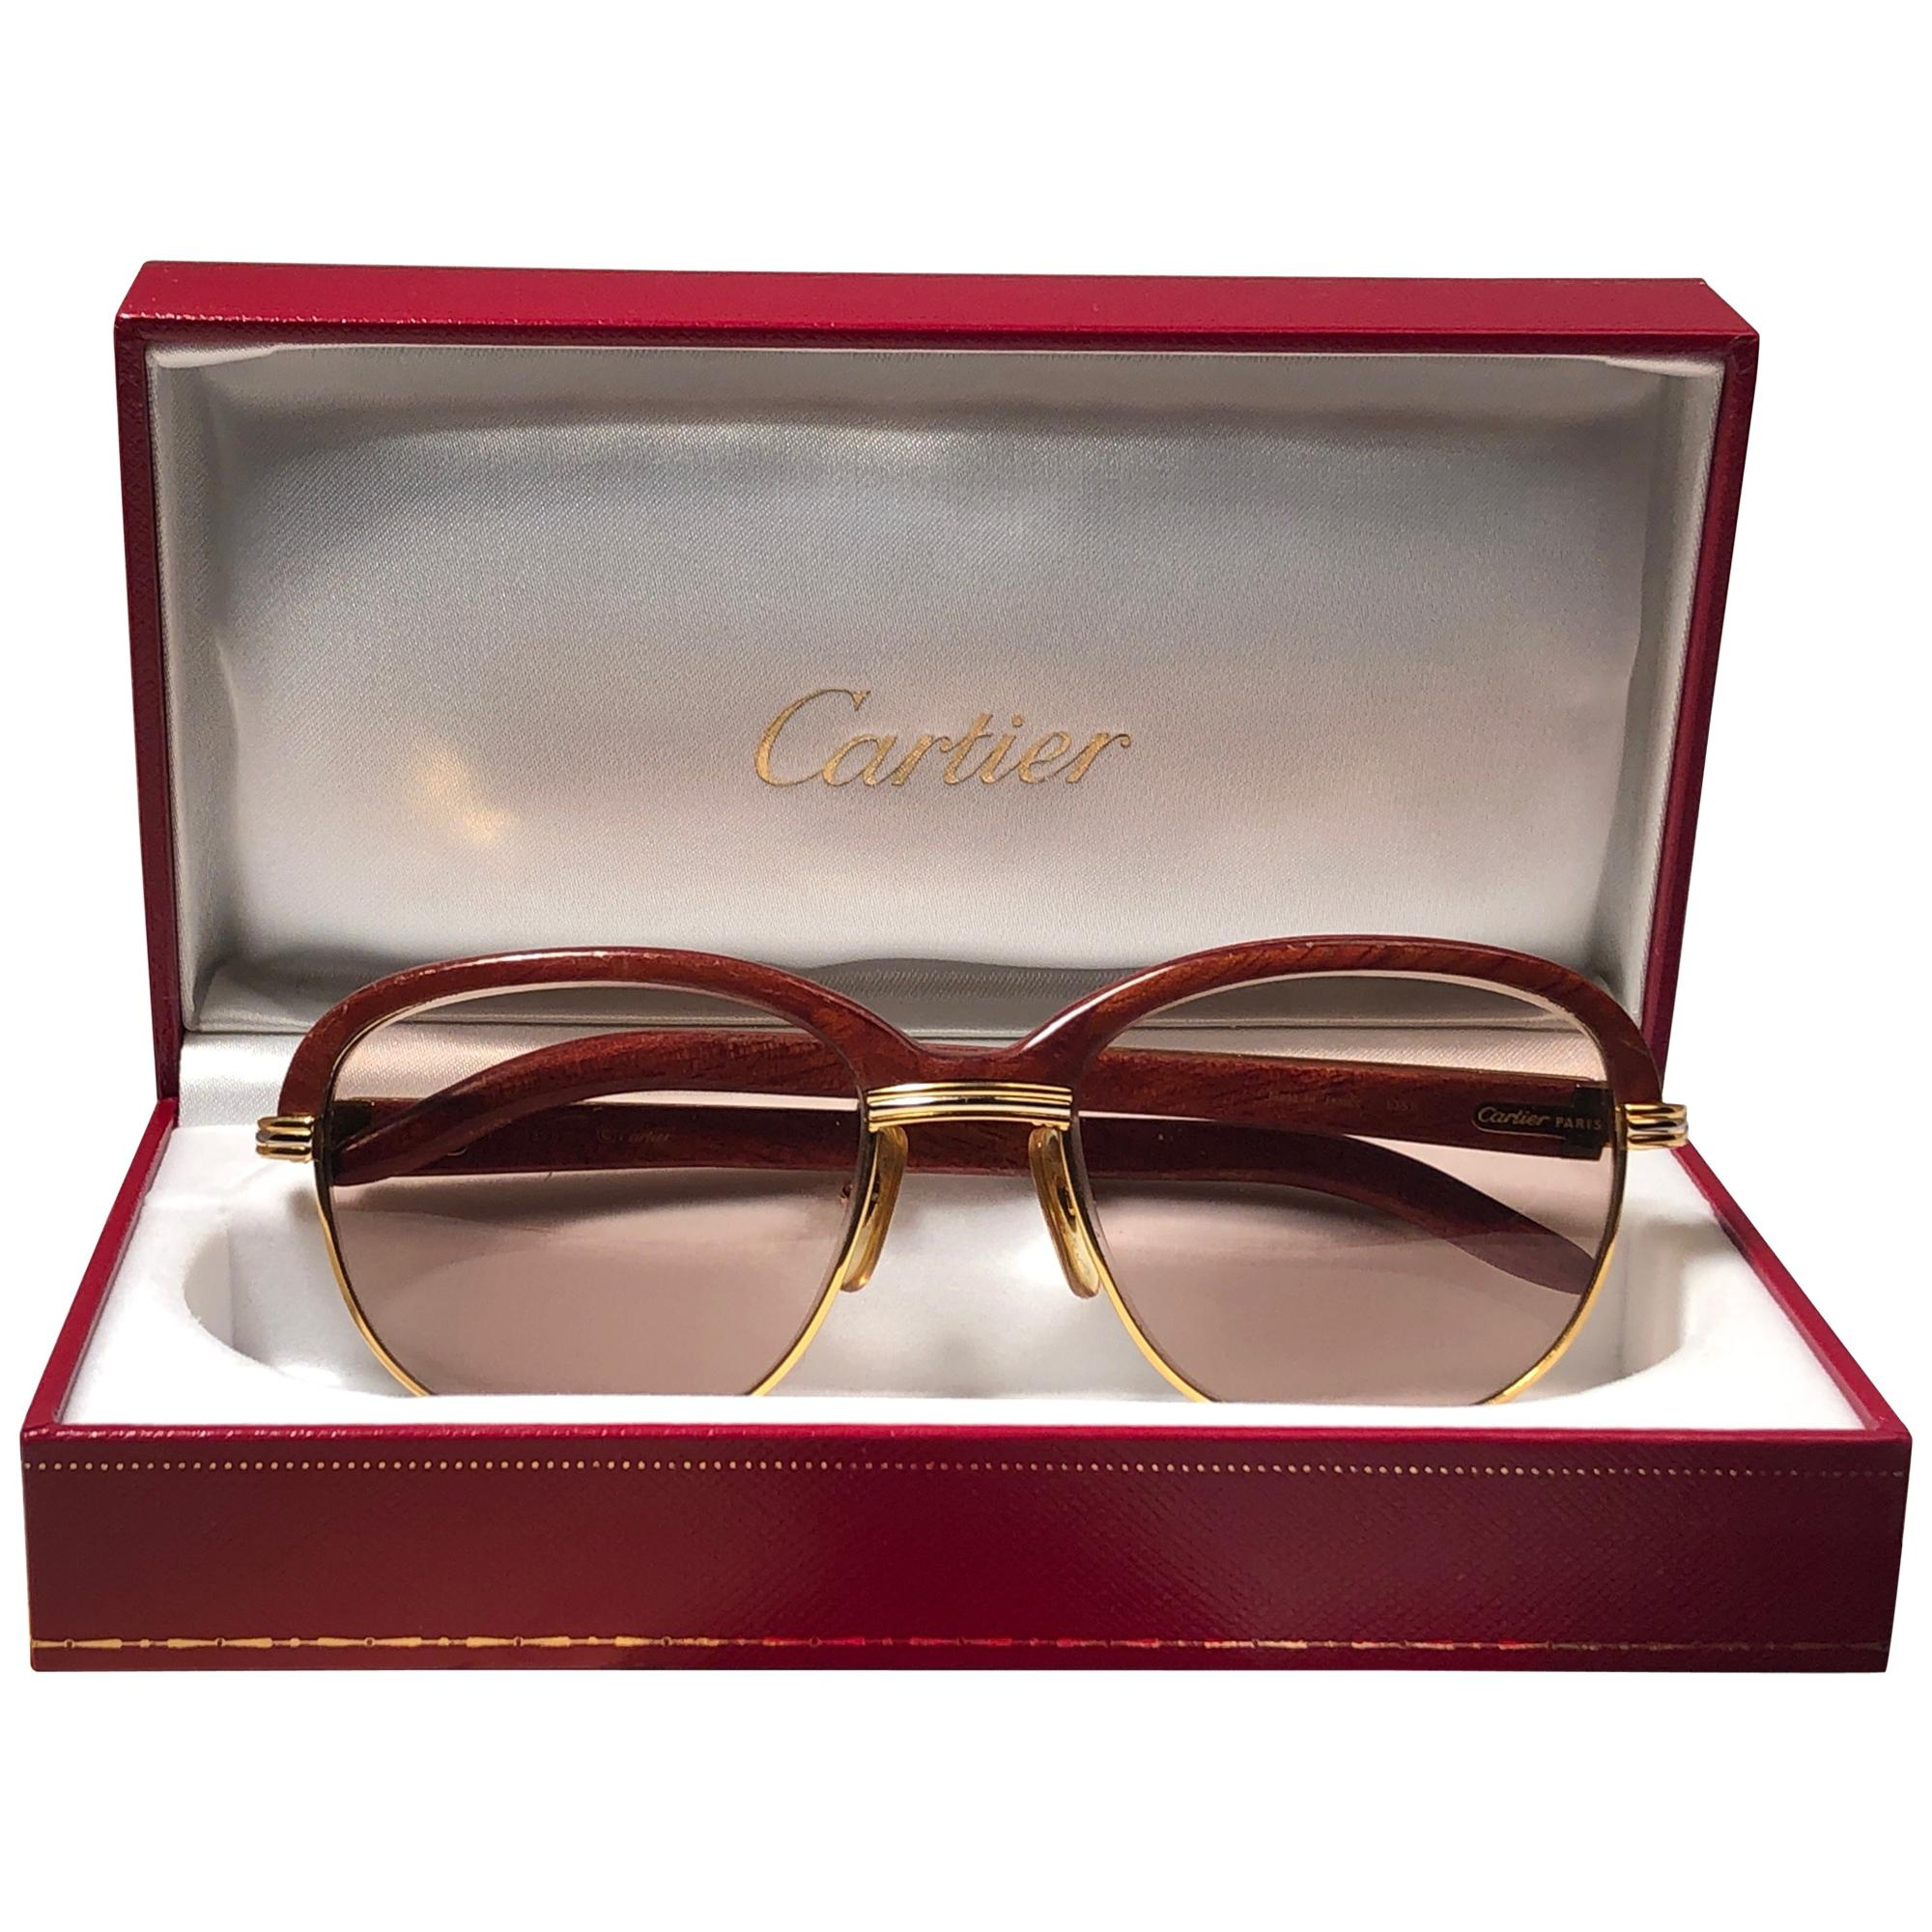 9792cbed82 Vintage Cartier Sunglasses - 158 For Sale at 1stdibs